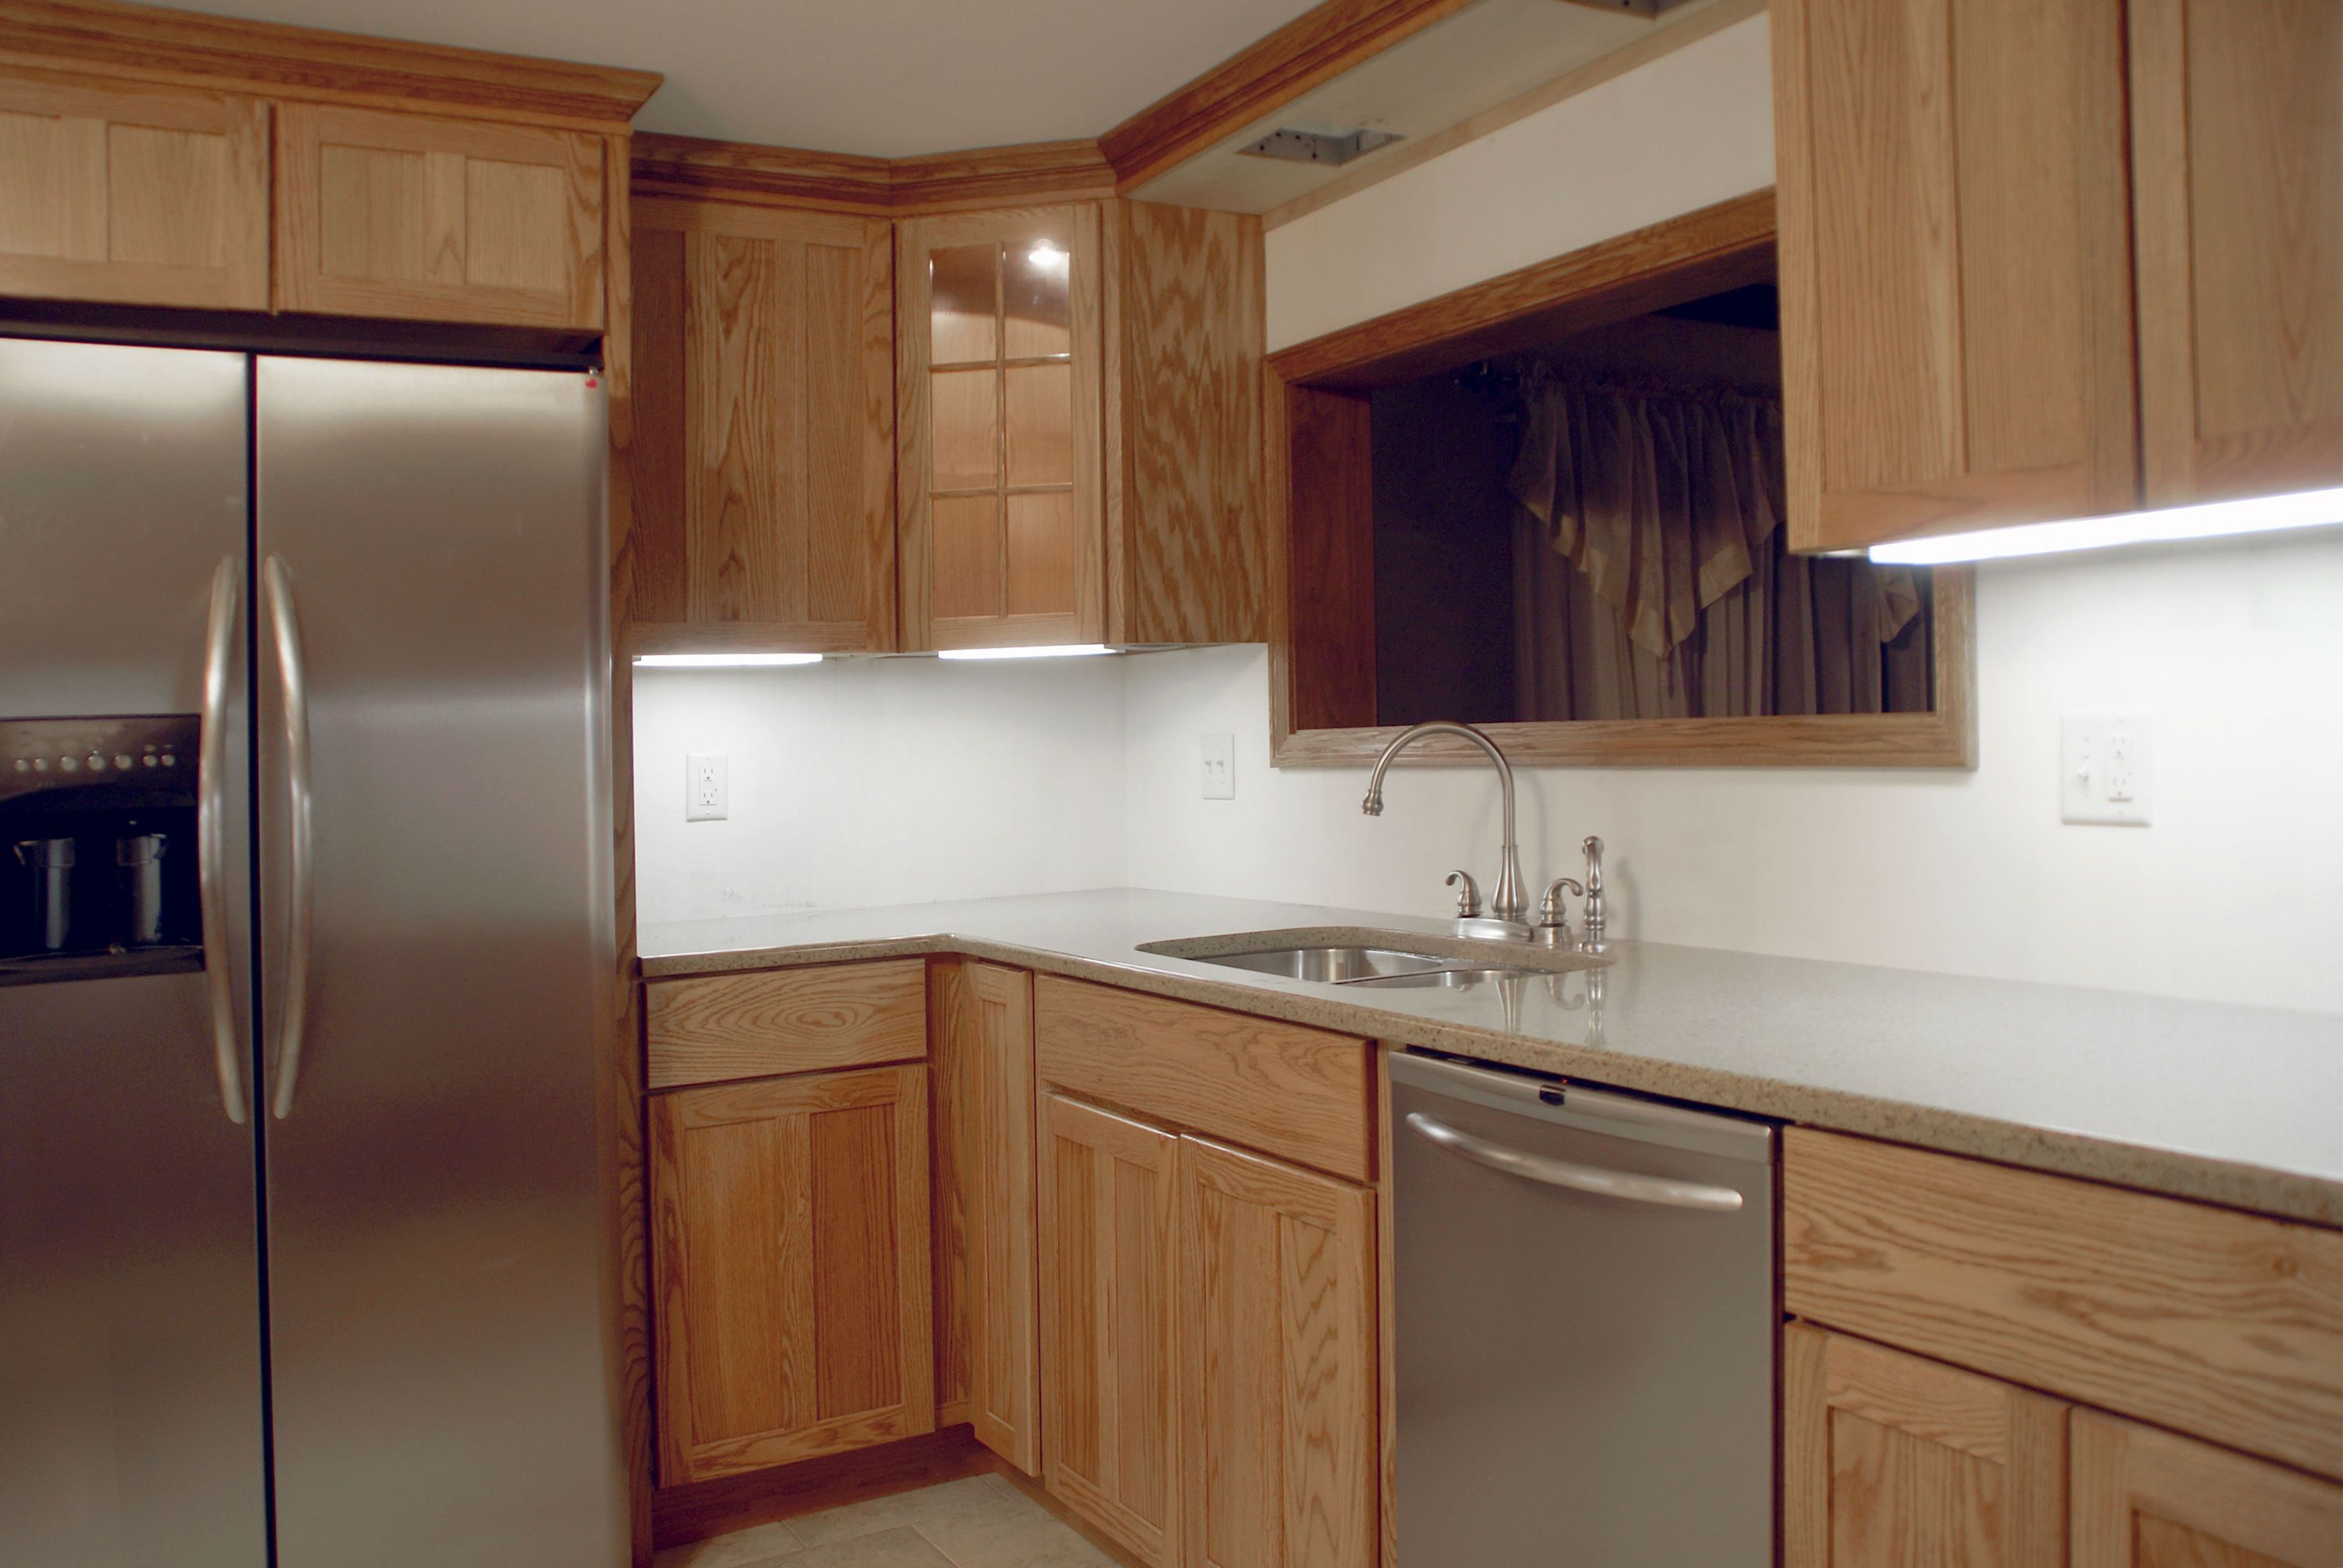 Refacing or replacing kitchen cabinets for The kitchen cupboard